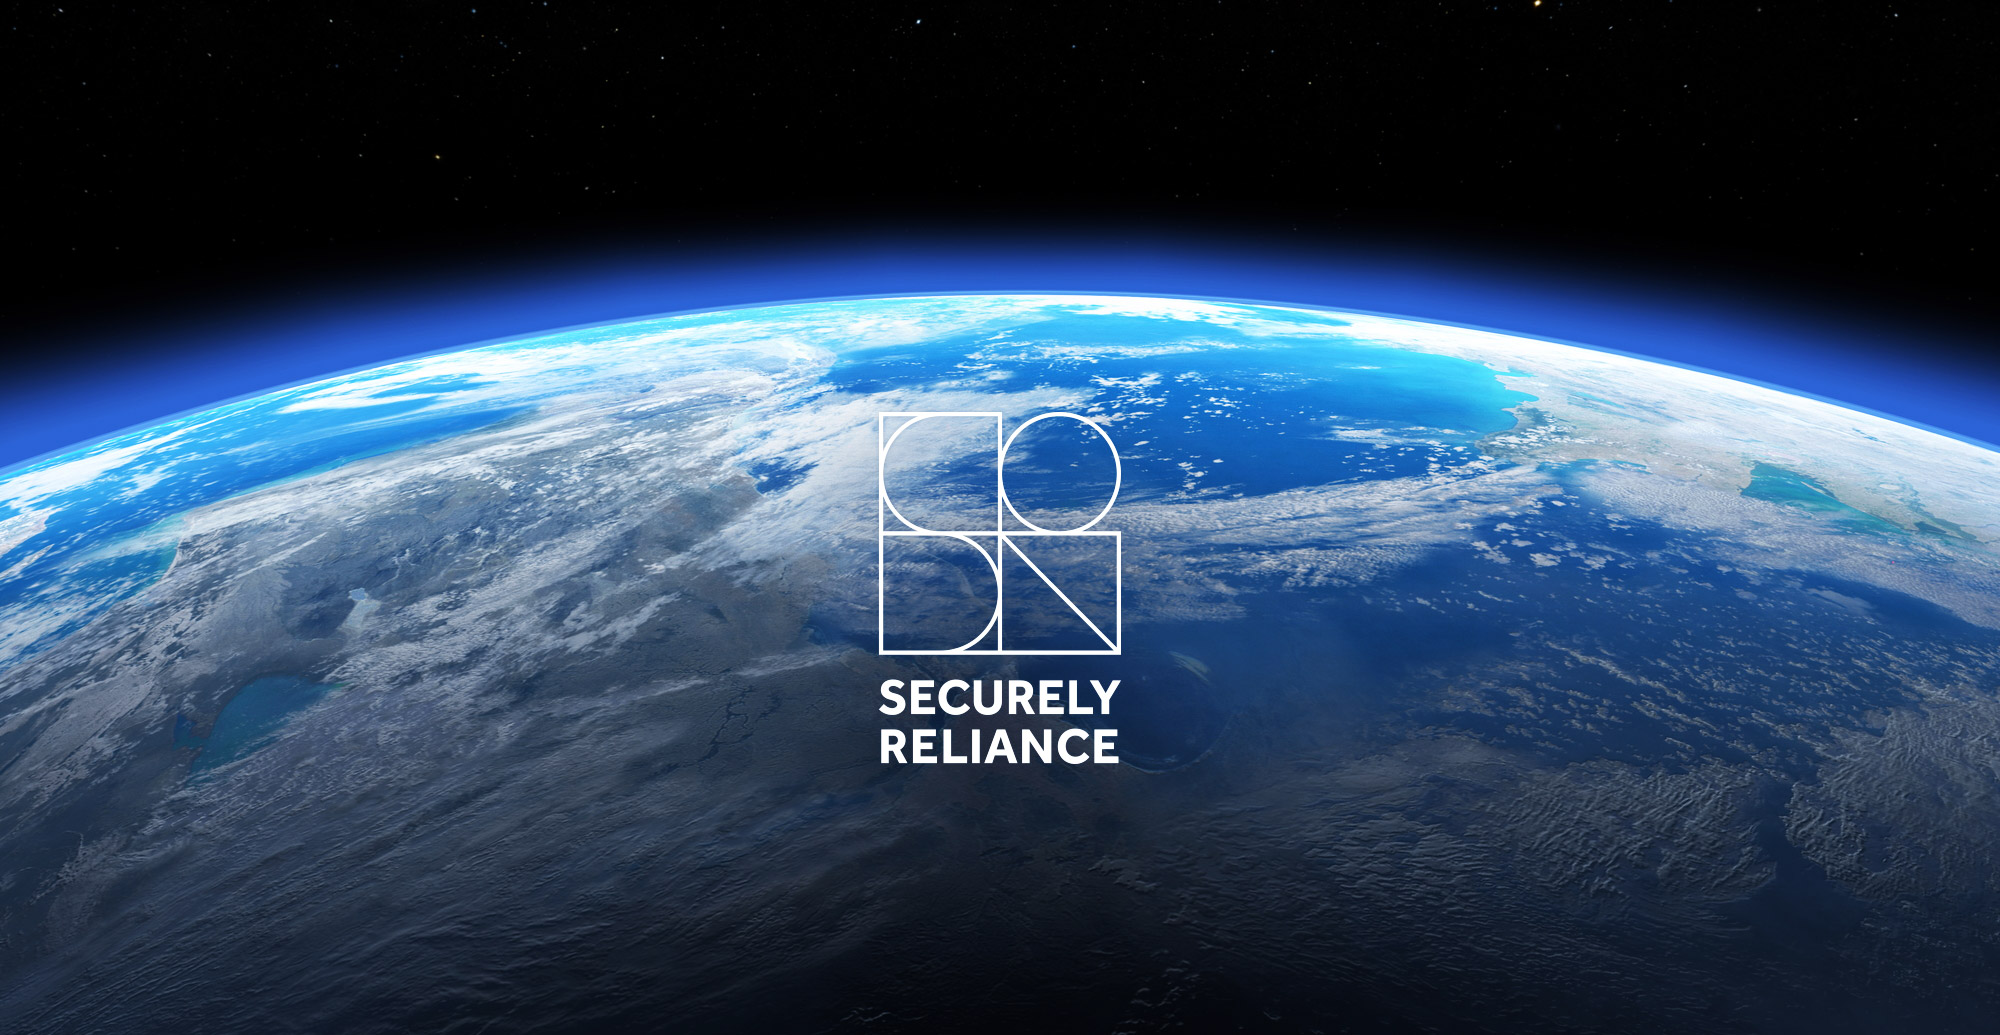 SECURELY RELIANCE